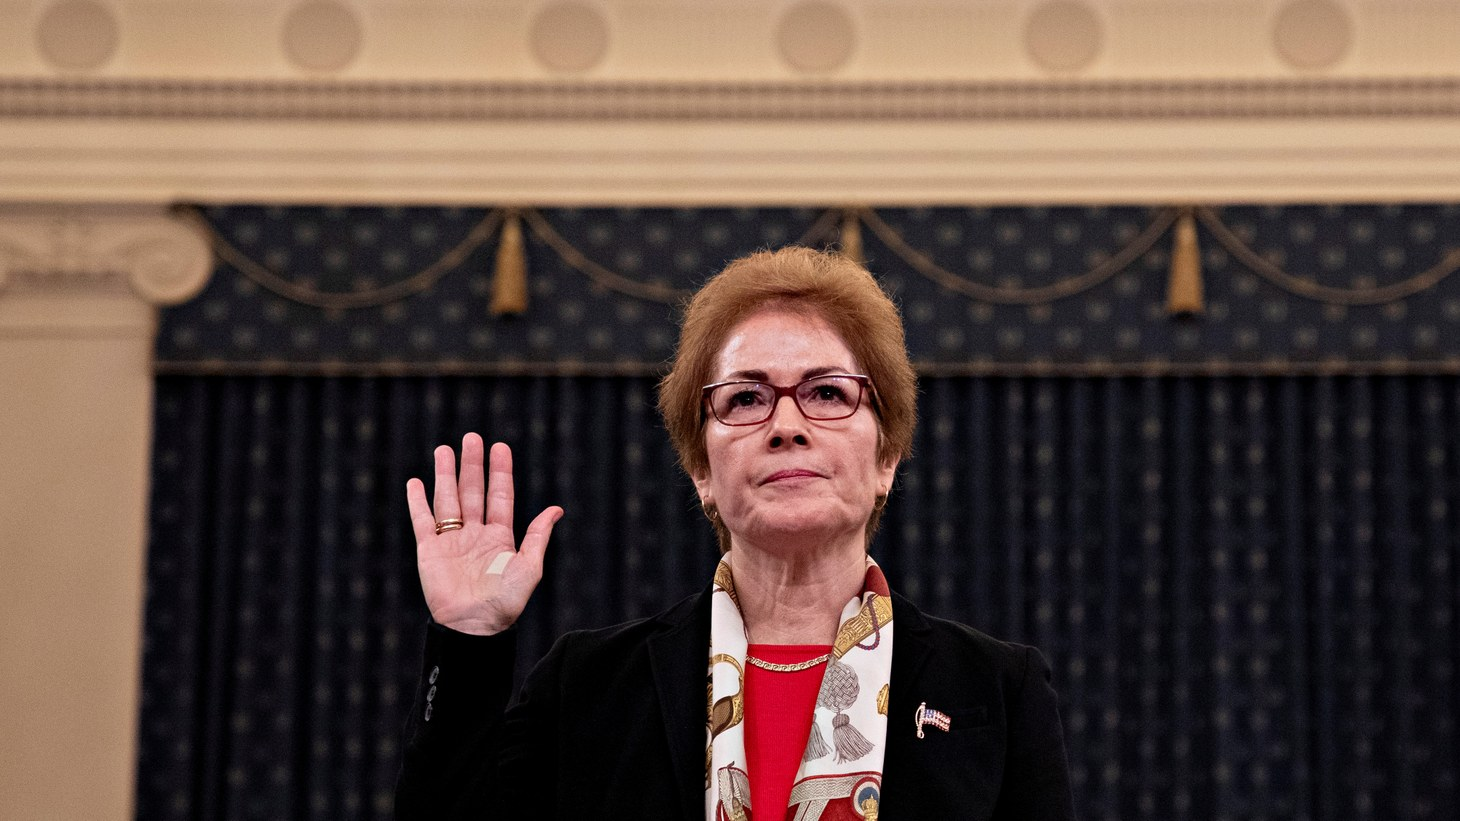 Marie Yovanovitch, former U.S. ambassador to Ukraine, is sworn in to testify before a House Intelligence Committee hearing as part of the impeachment inquiry into U.S. President Donald Trump on Capitol Hill in Washington, U.S., November 15, 2019.